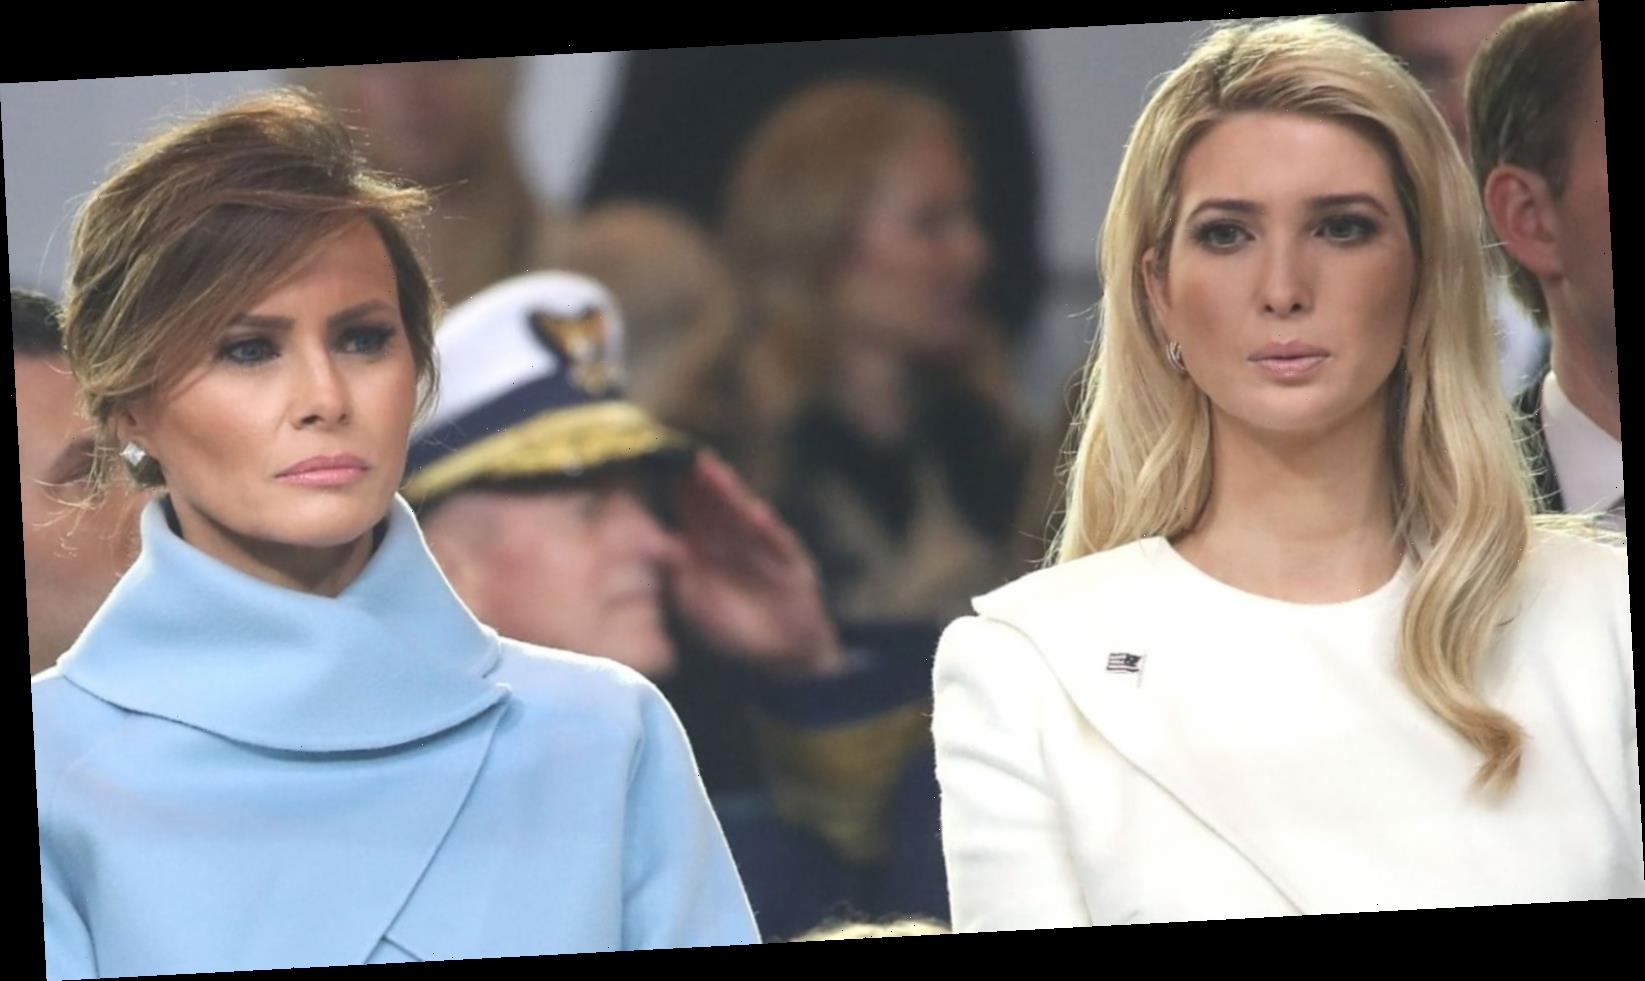 The Truth About The Ivanka/Melania Trump Feud